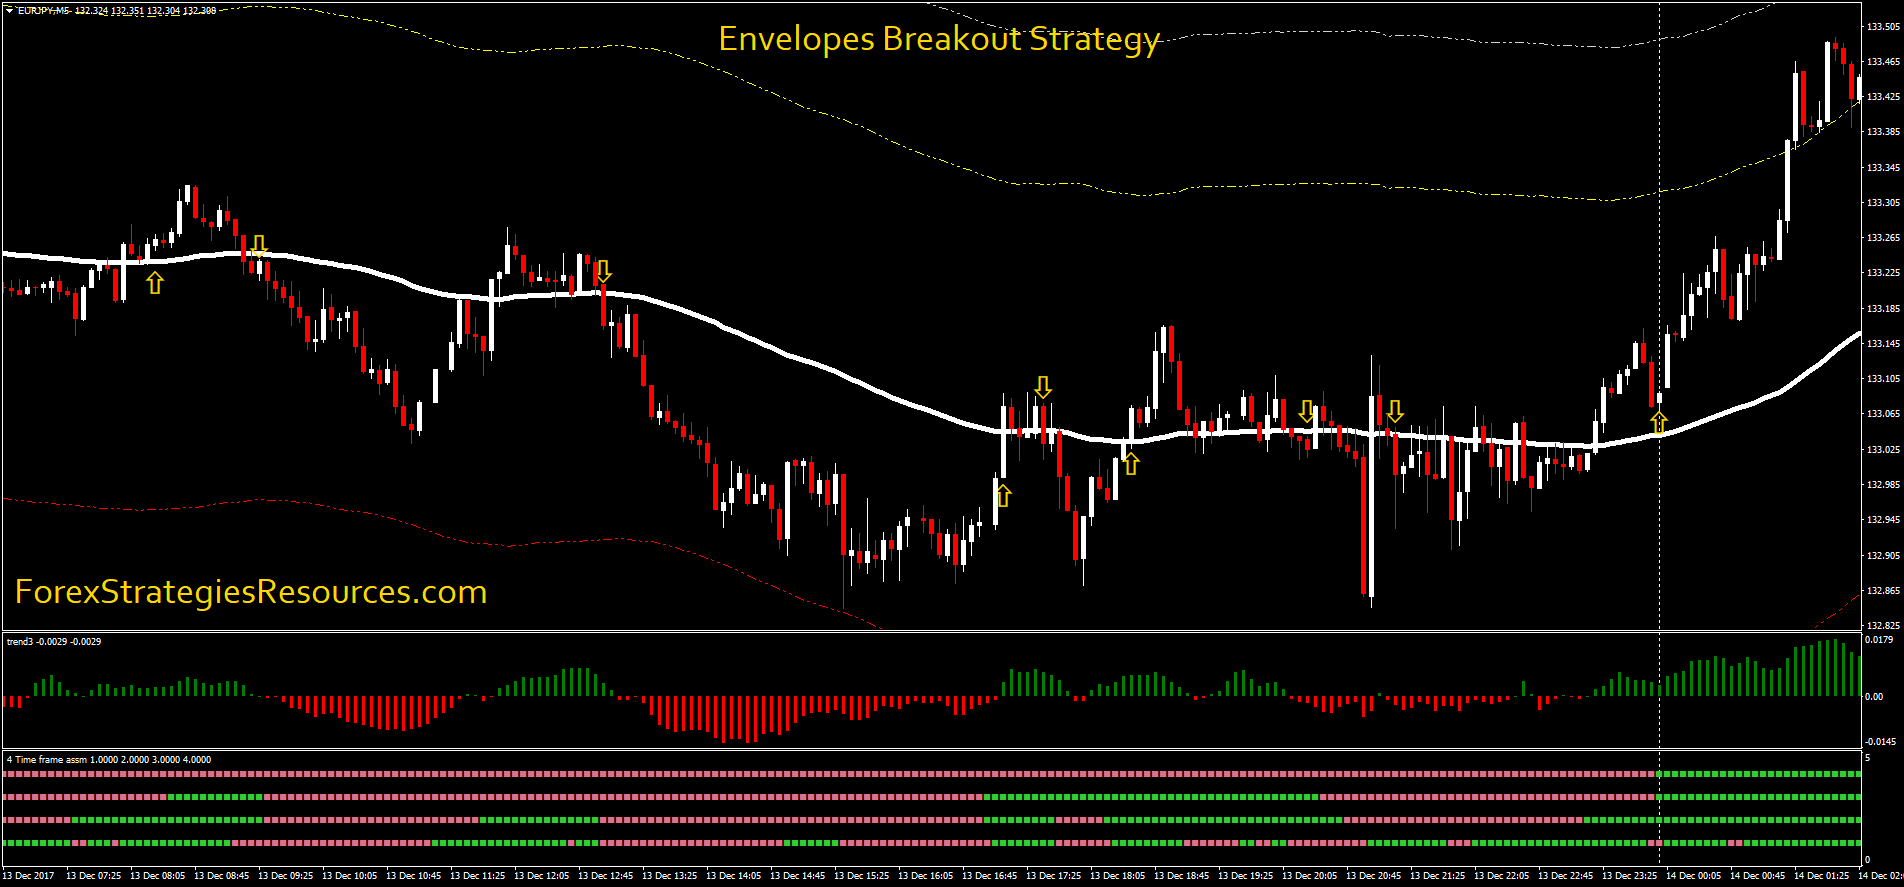 Envelopes Breakout Strategy - Forex Strategies - Forex Resources - Forex Trading-free forex ...